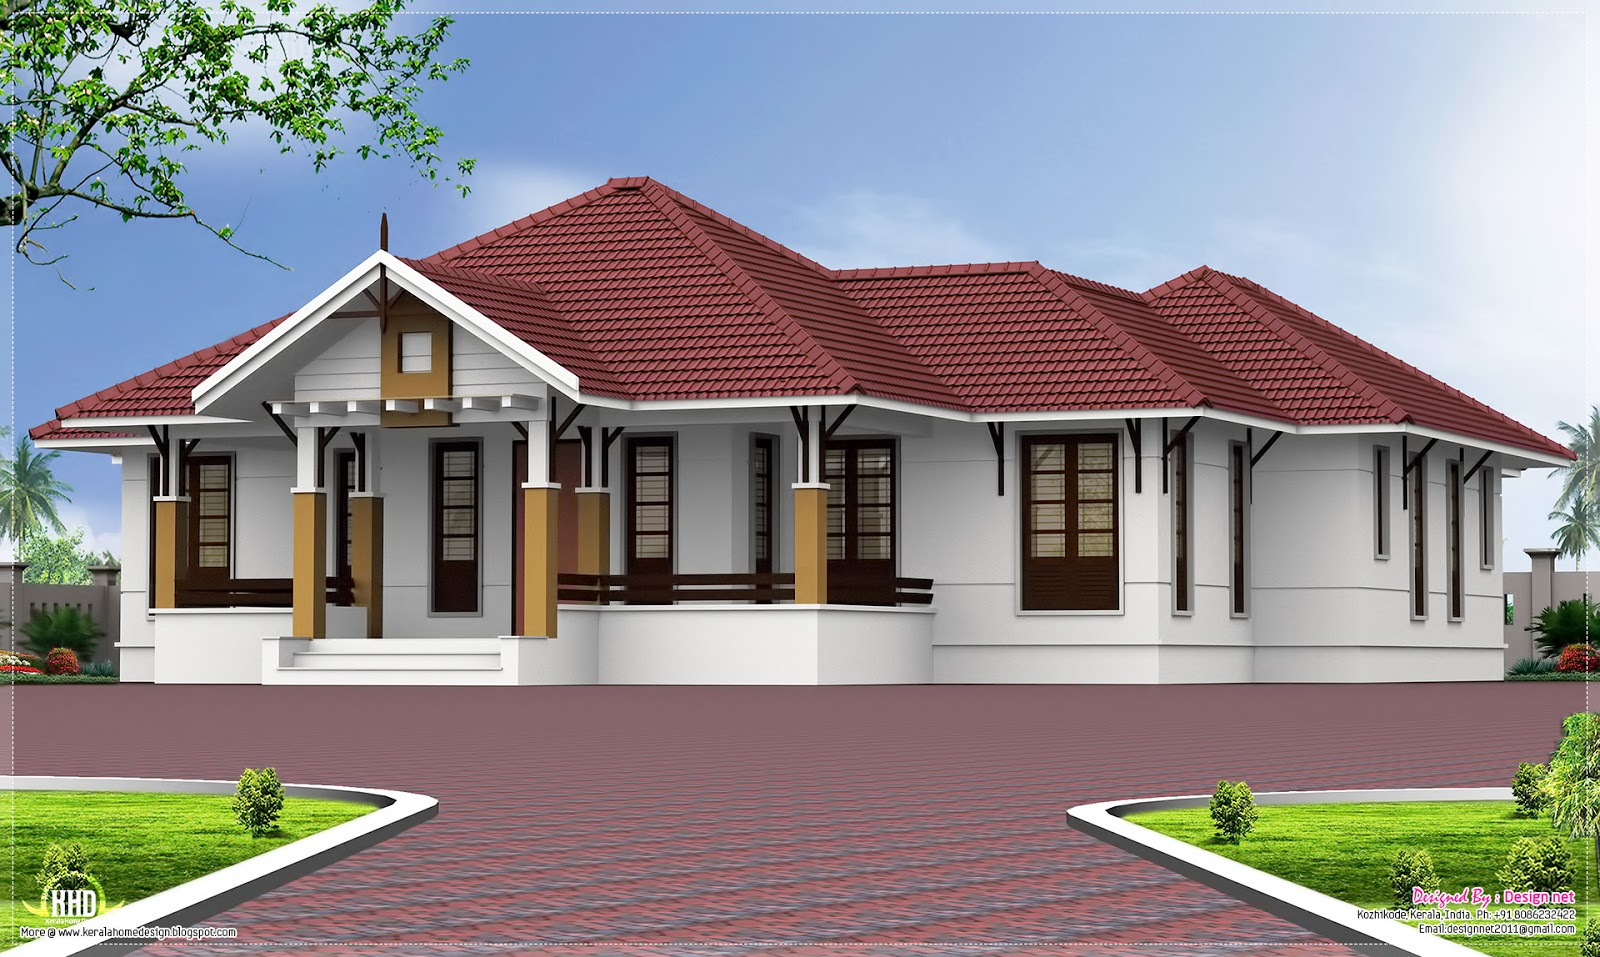 Single floor 4 bedroom home with courtyard - Kerala home design and ...